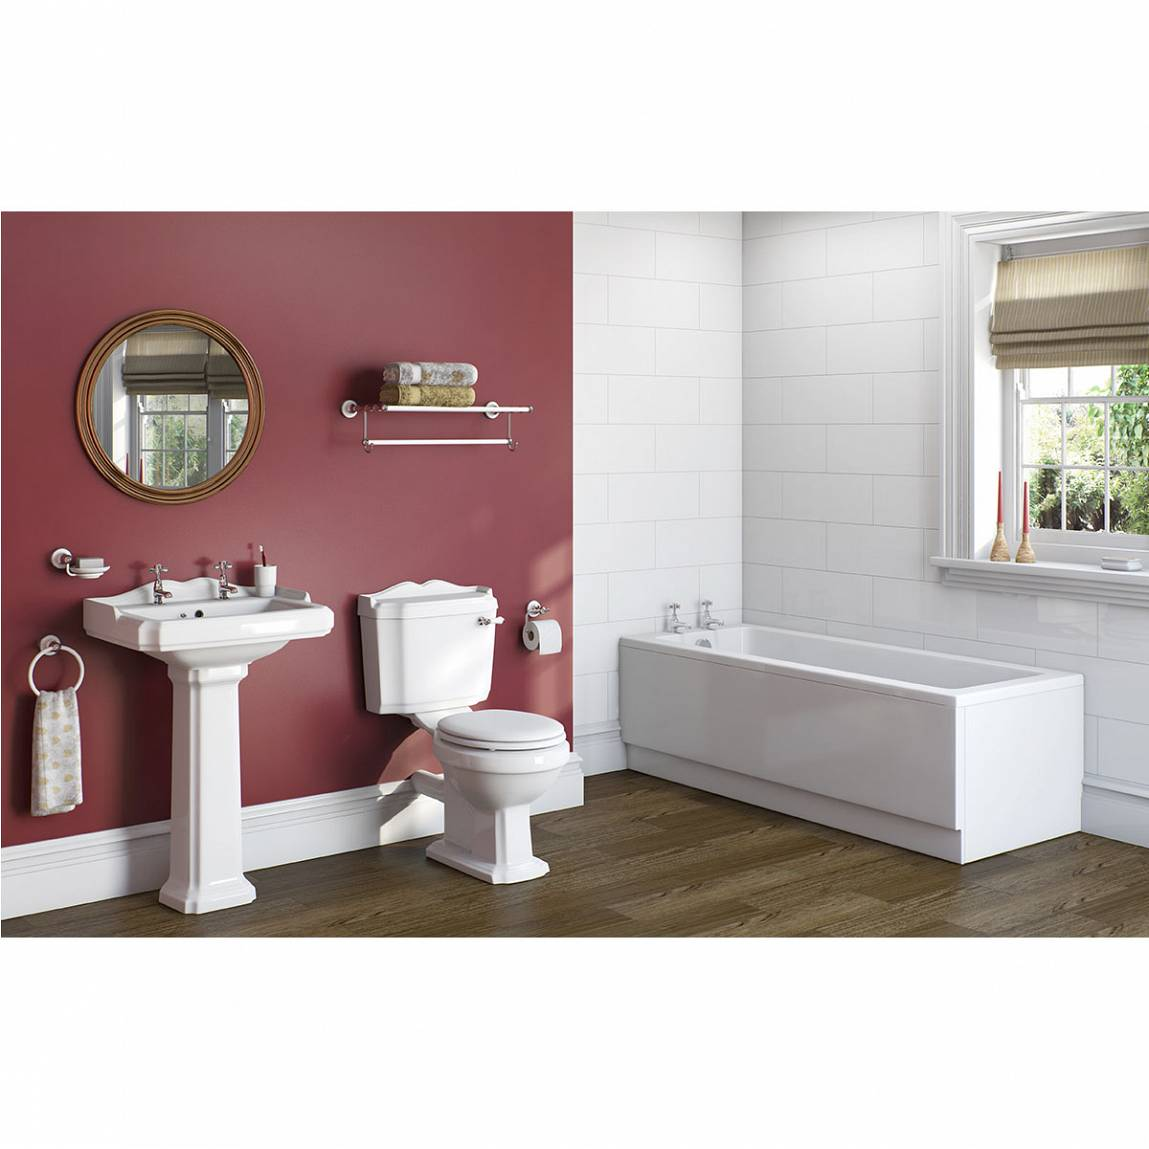 Winchester Master Suite: Winchester Bathroom Suite With Kensington 1700 X 700 Bath